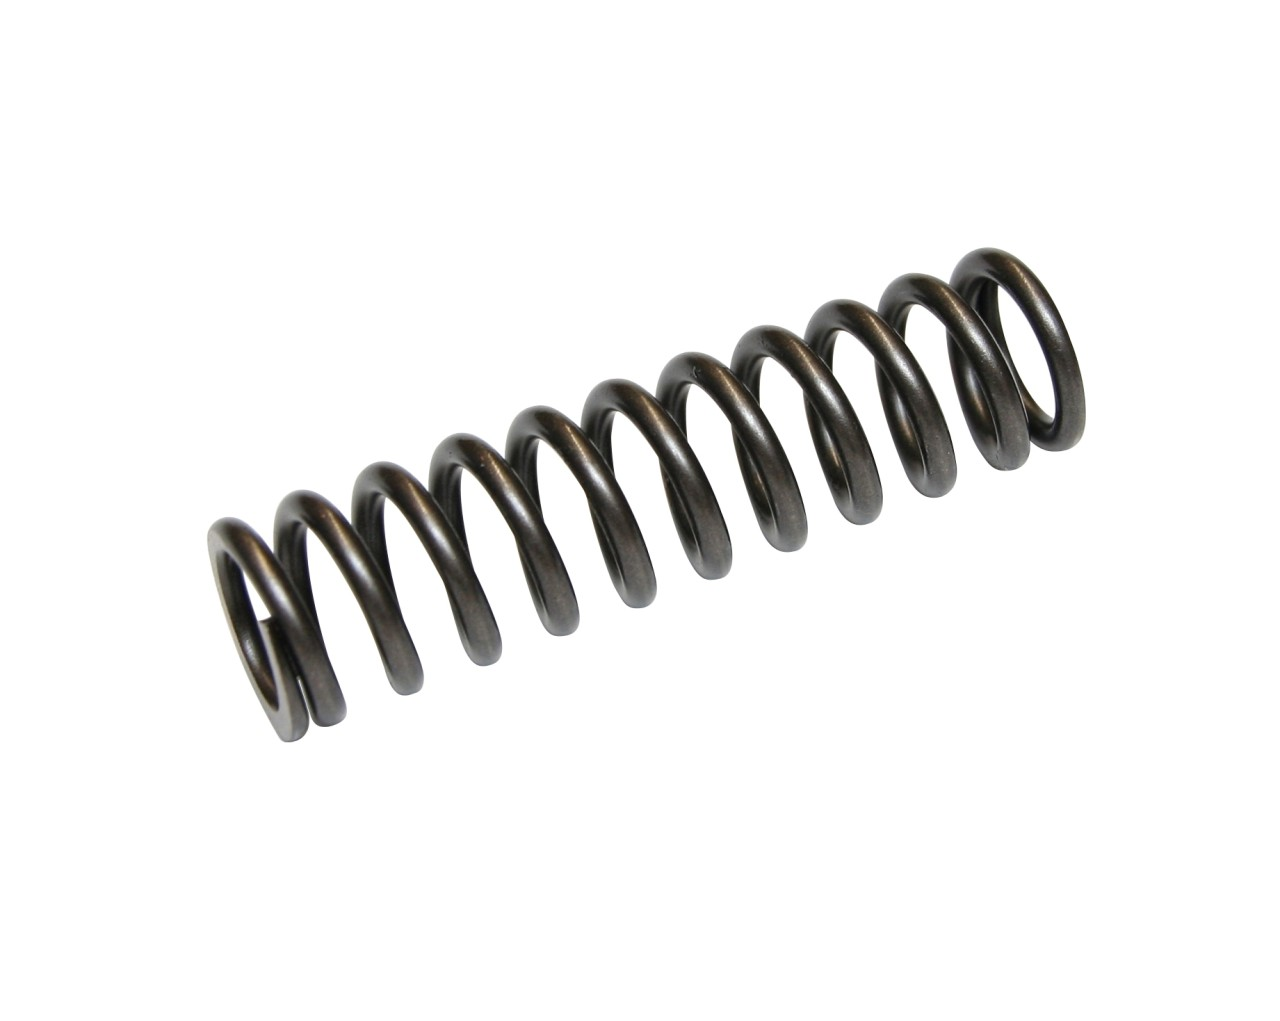 Balancefeder PSF Gabel (KYB) 25 N/mm - MX-Special-Parts Onlineshop für MX Motocross Enduro Sport